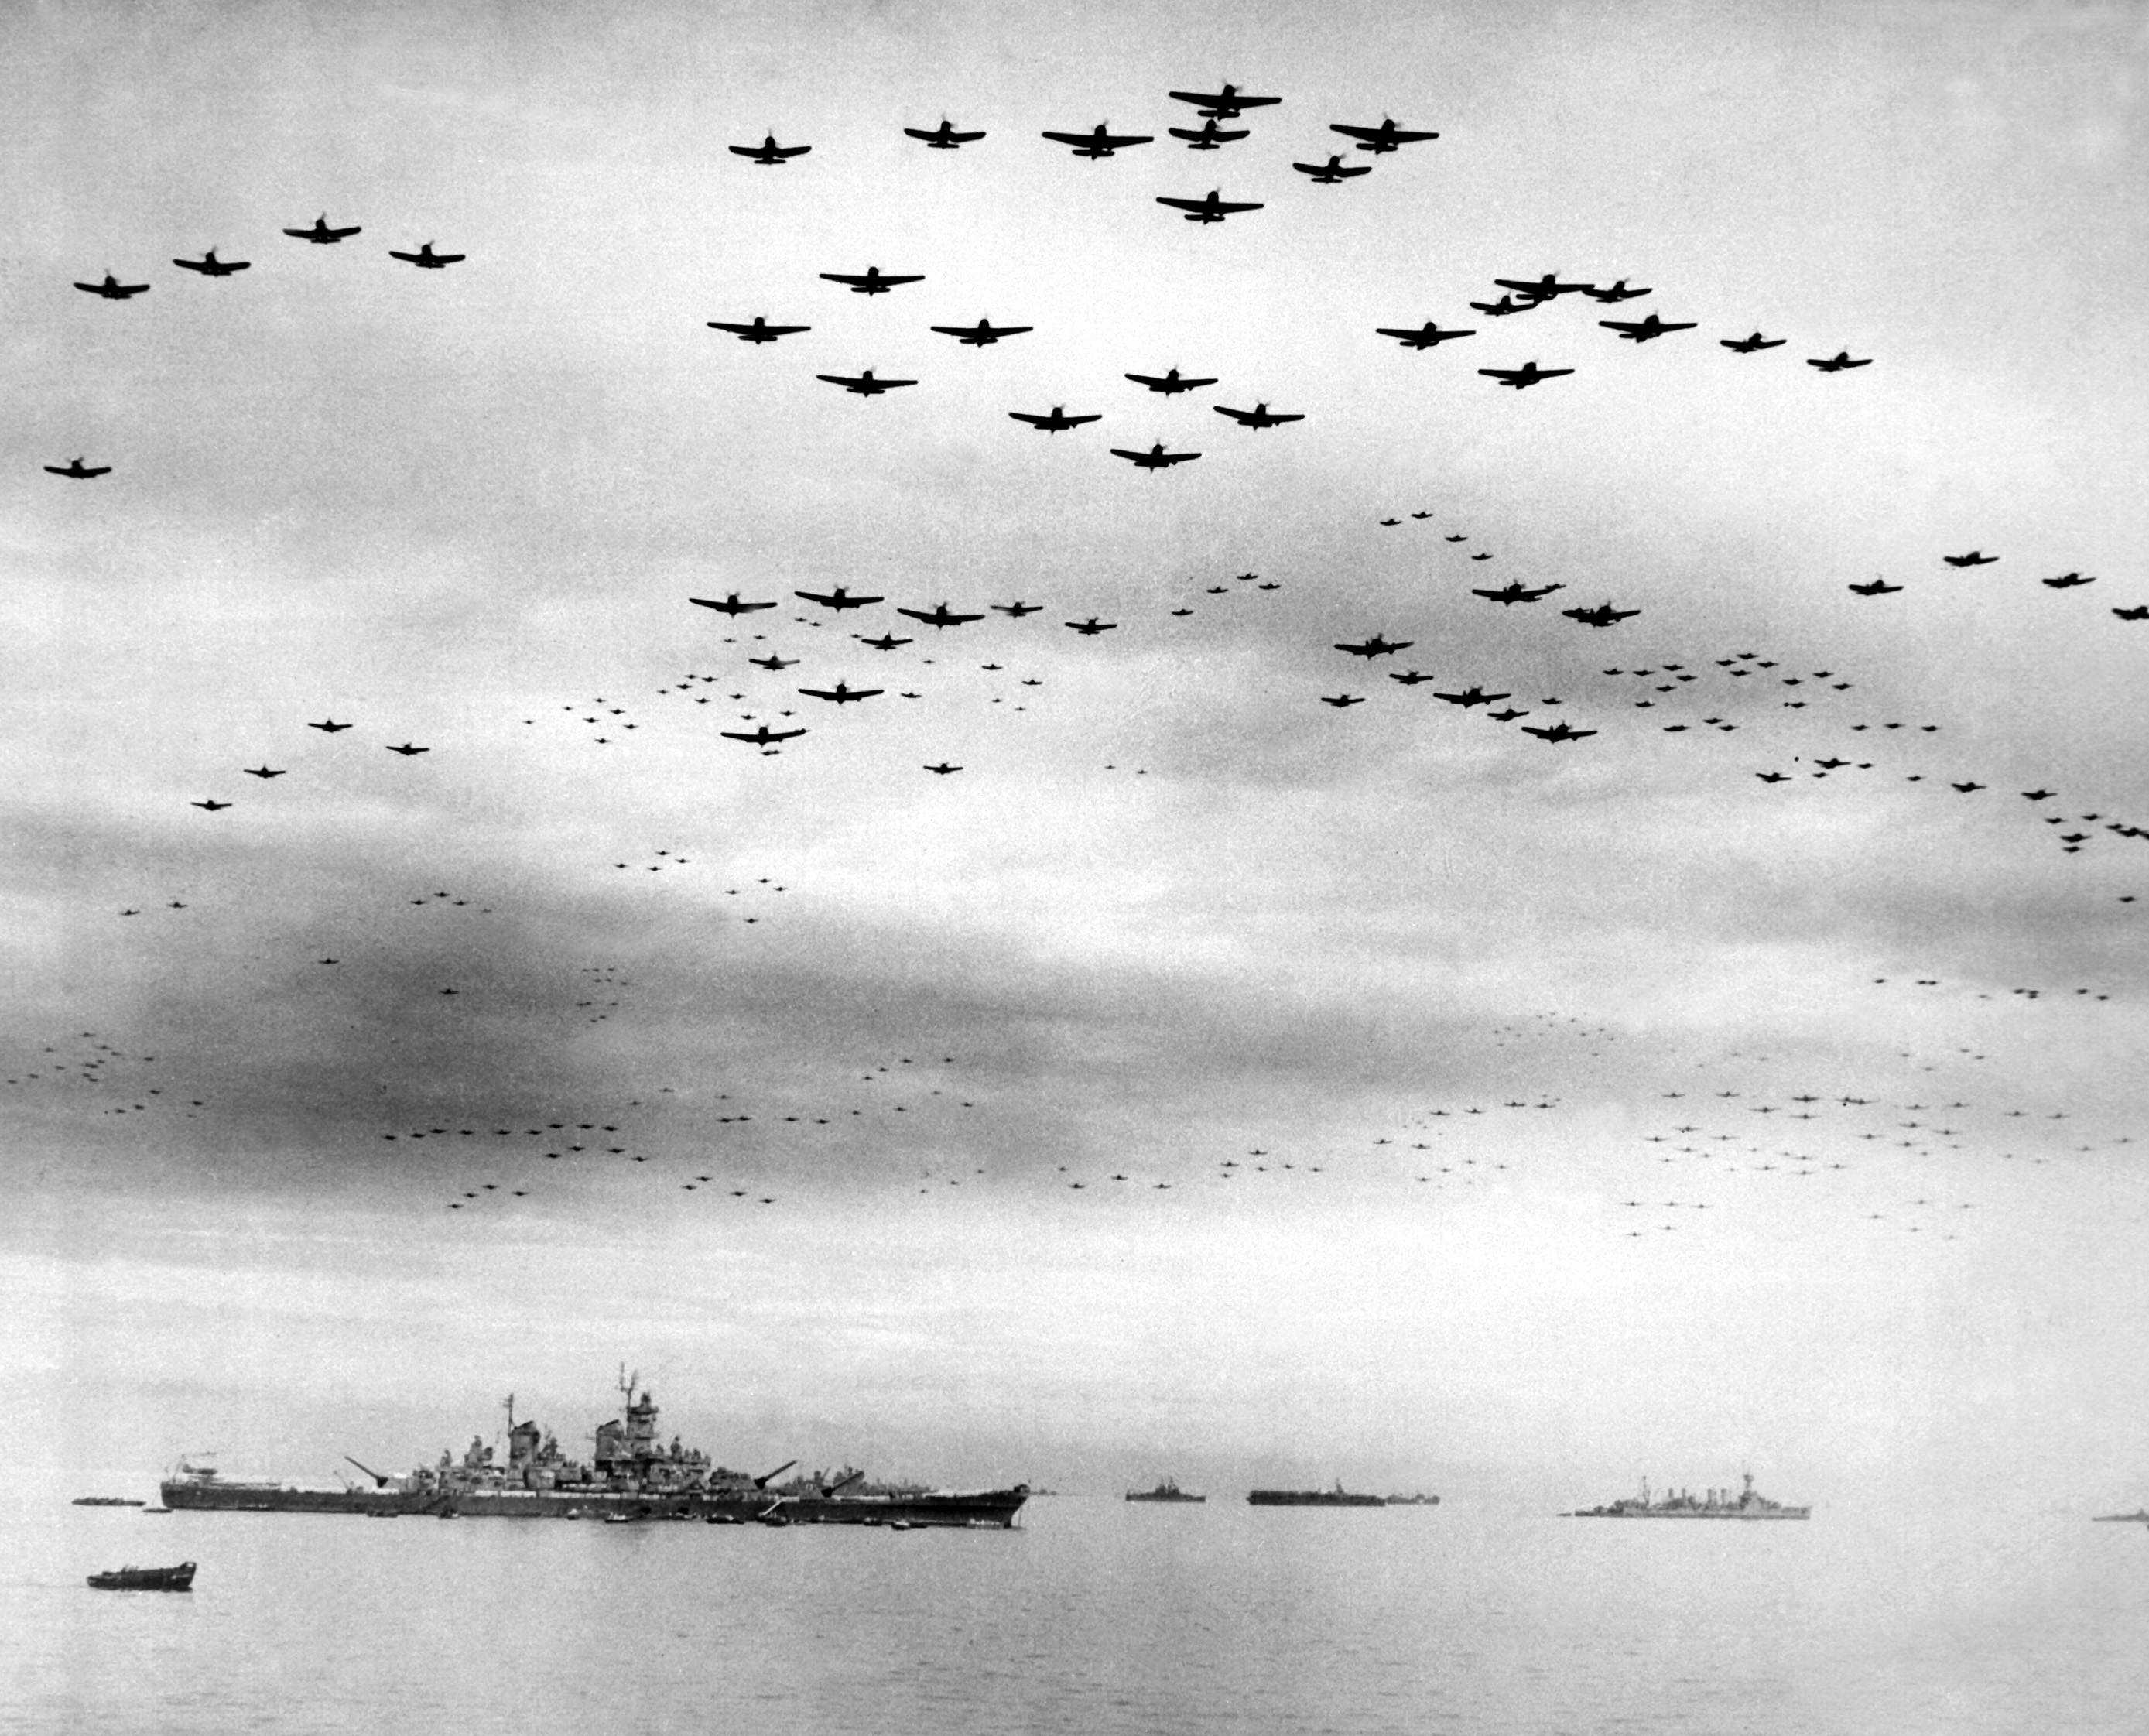 The massed flyover of Allied aircraft over Tokyo Bay during the WWII Japanese Surrender Ceremony aboard the USS Missouri below on September 2nd, 1945. Somewhere amongst the thousand aircraft thundering overhead is TBM-3E Avenger Bu.85632, the aircraft hoping to make the 70th anniversary flyover of the USS Missouri where she is now based, in Pearl Harbor, Hawaii. You can help her on that mission! (photo via Wikipedia)